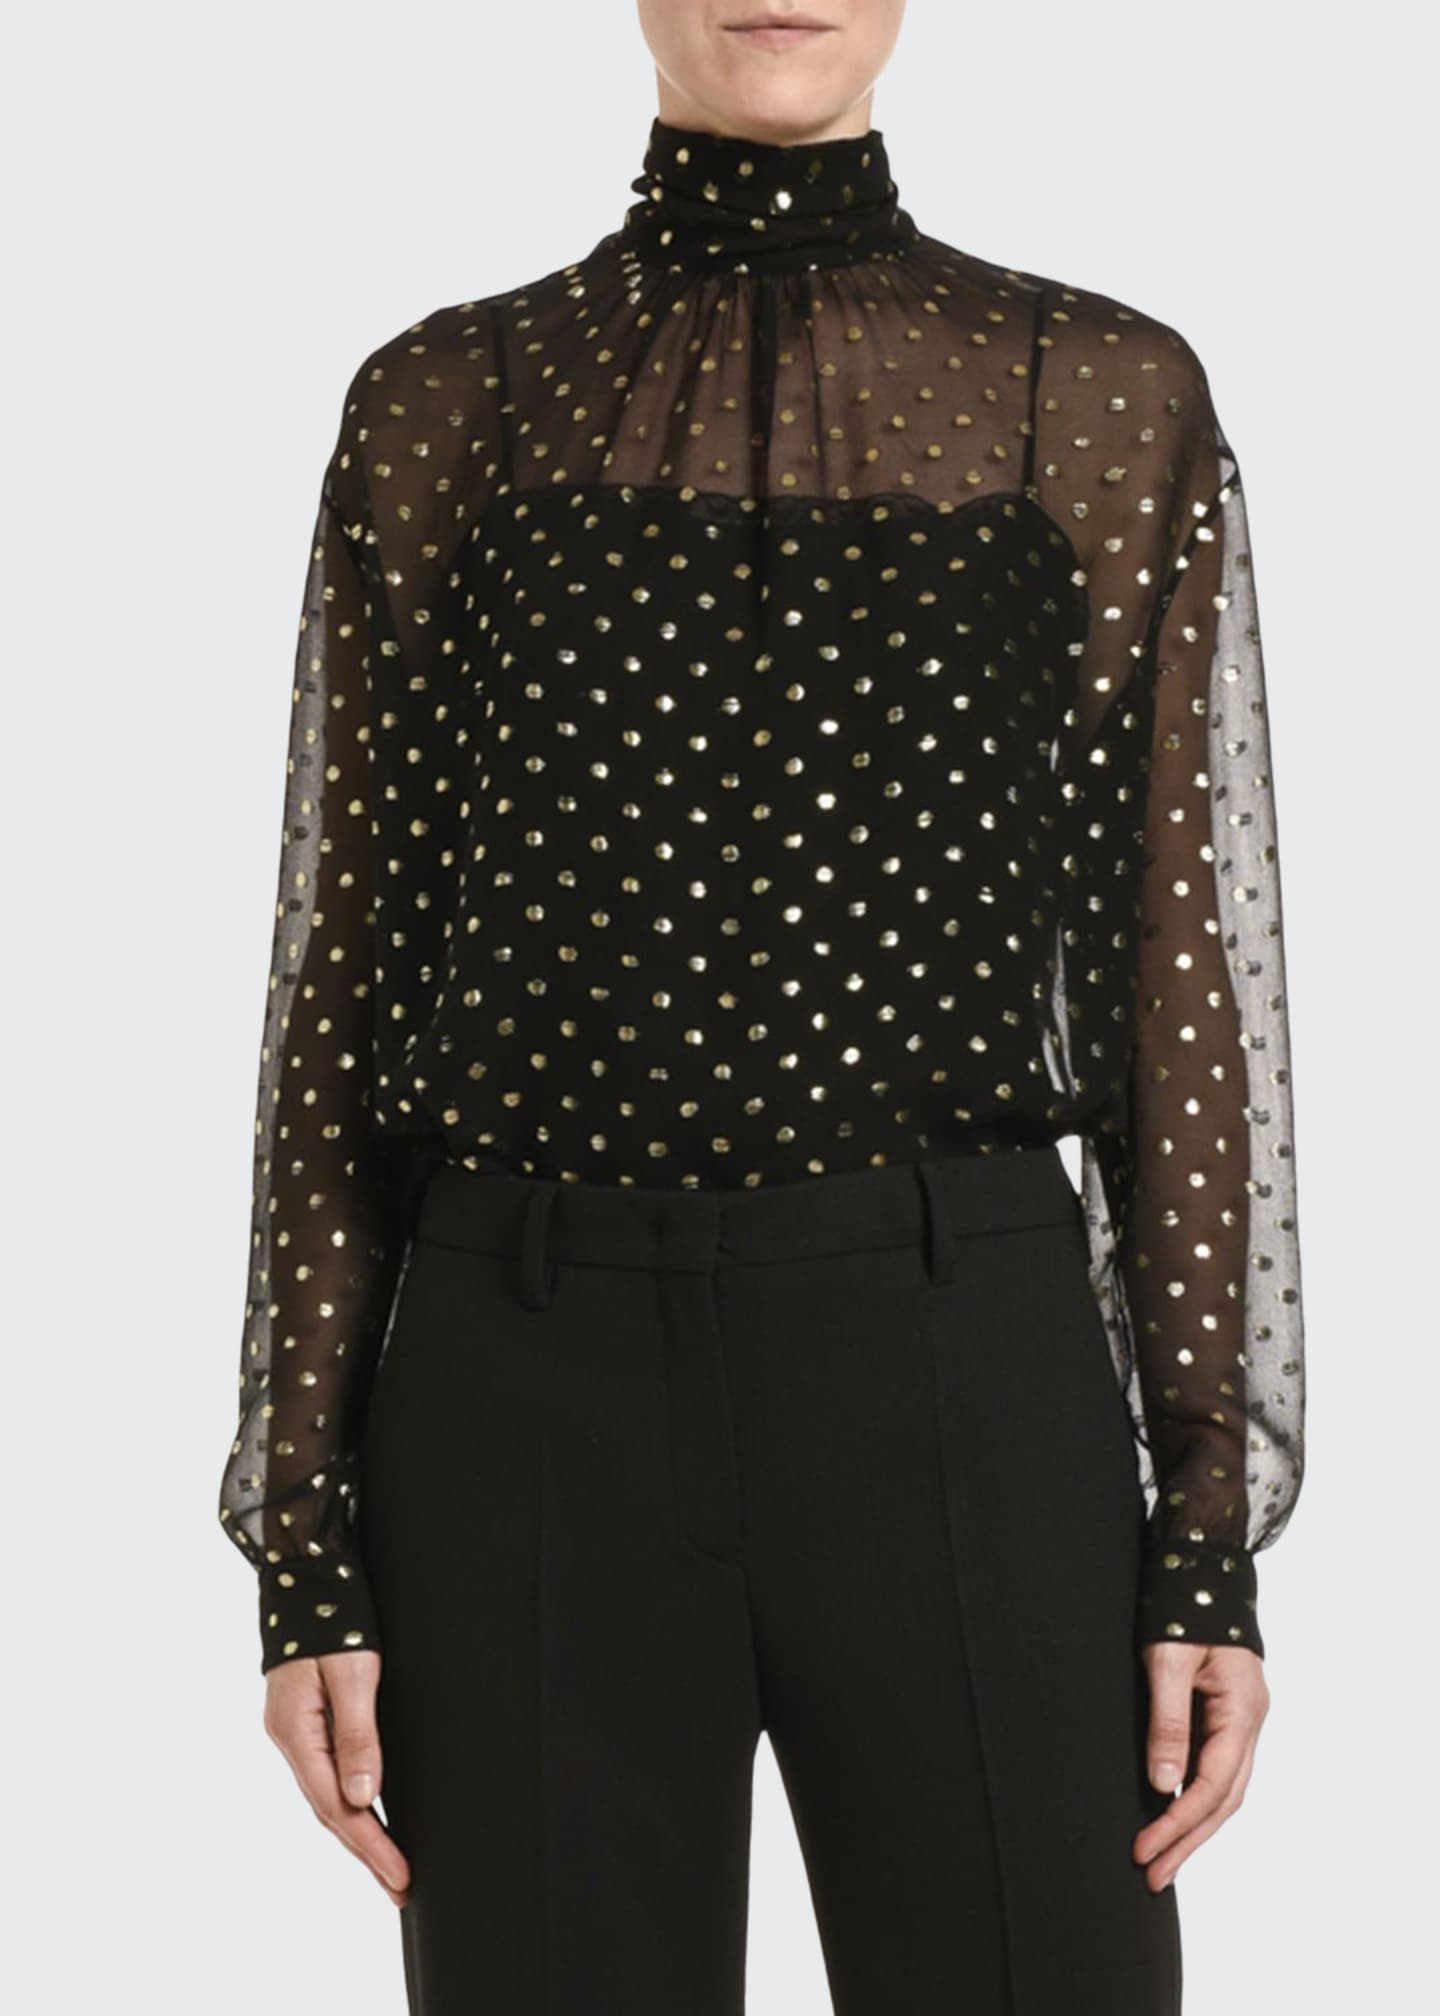 Prada Fil Coupe Chiffon Mock-Neck Blouse